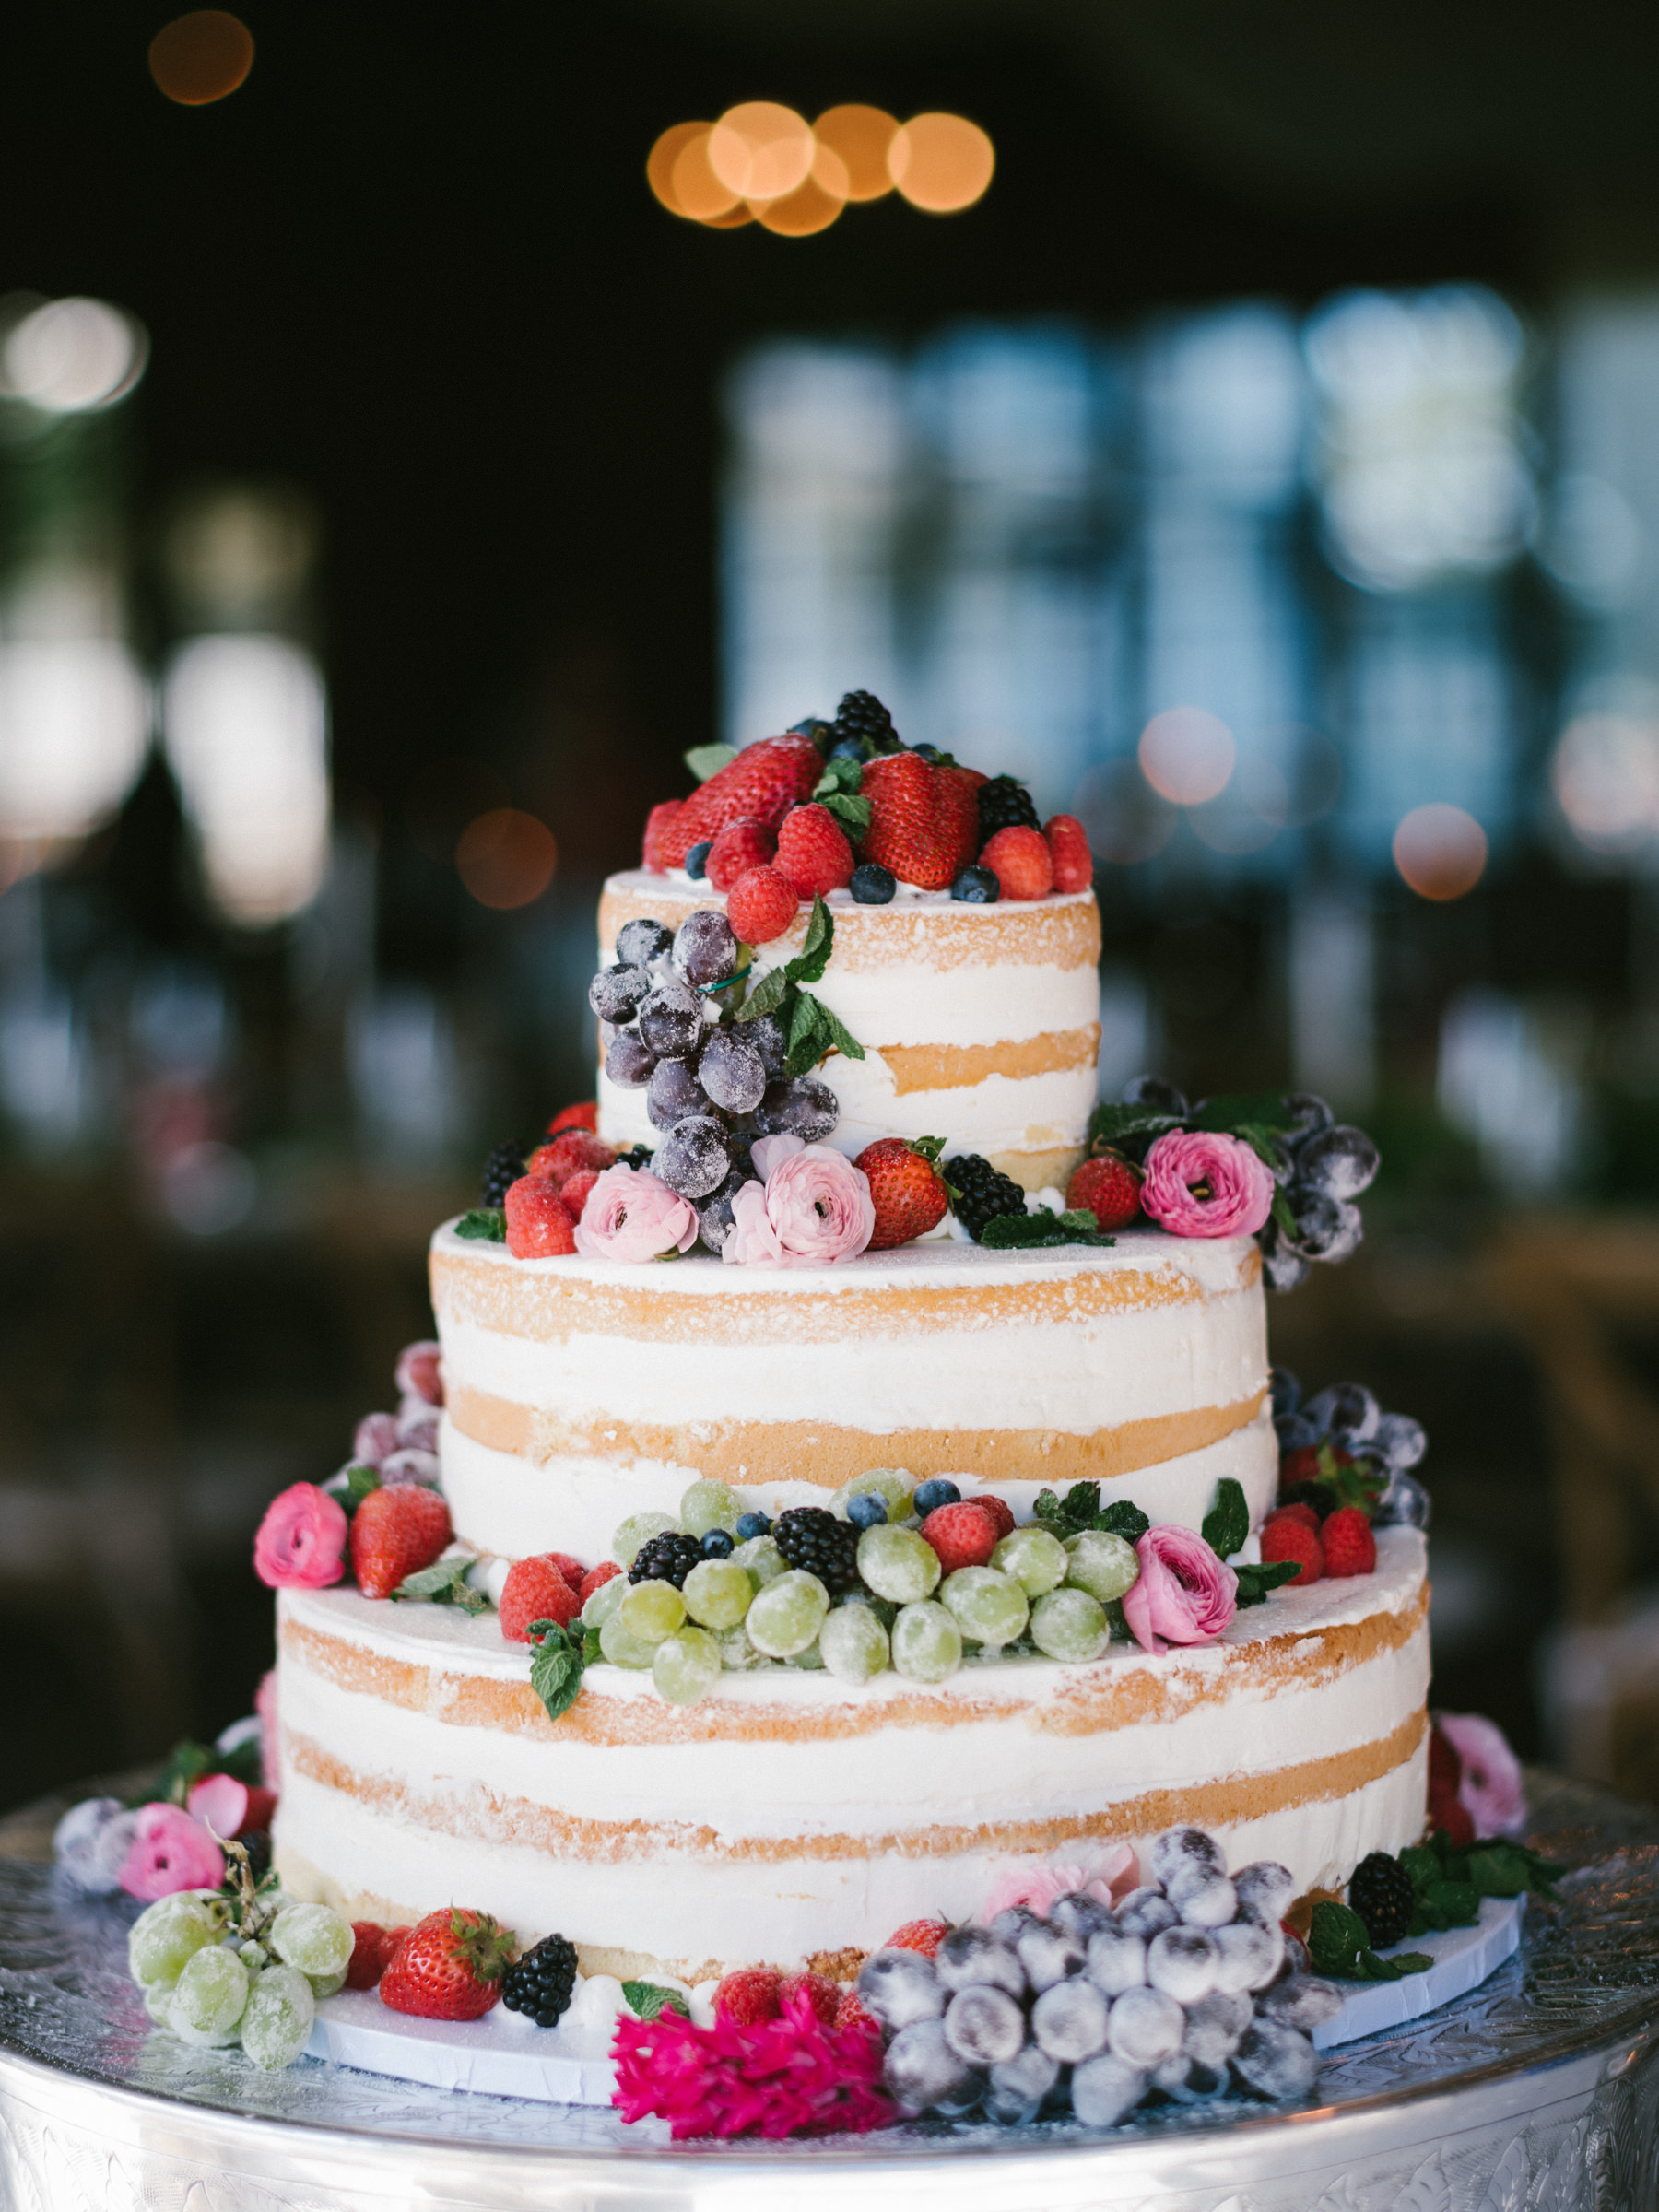 wedding-cake-with-colorful-fruit-and-flowers-amyandstuart-photography